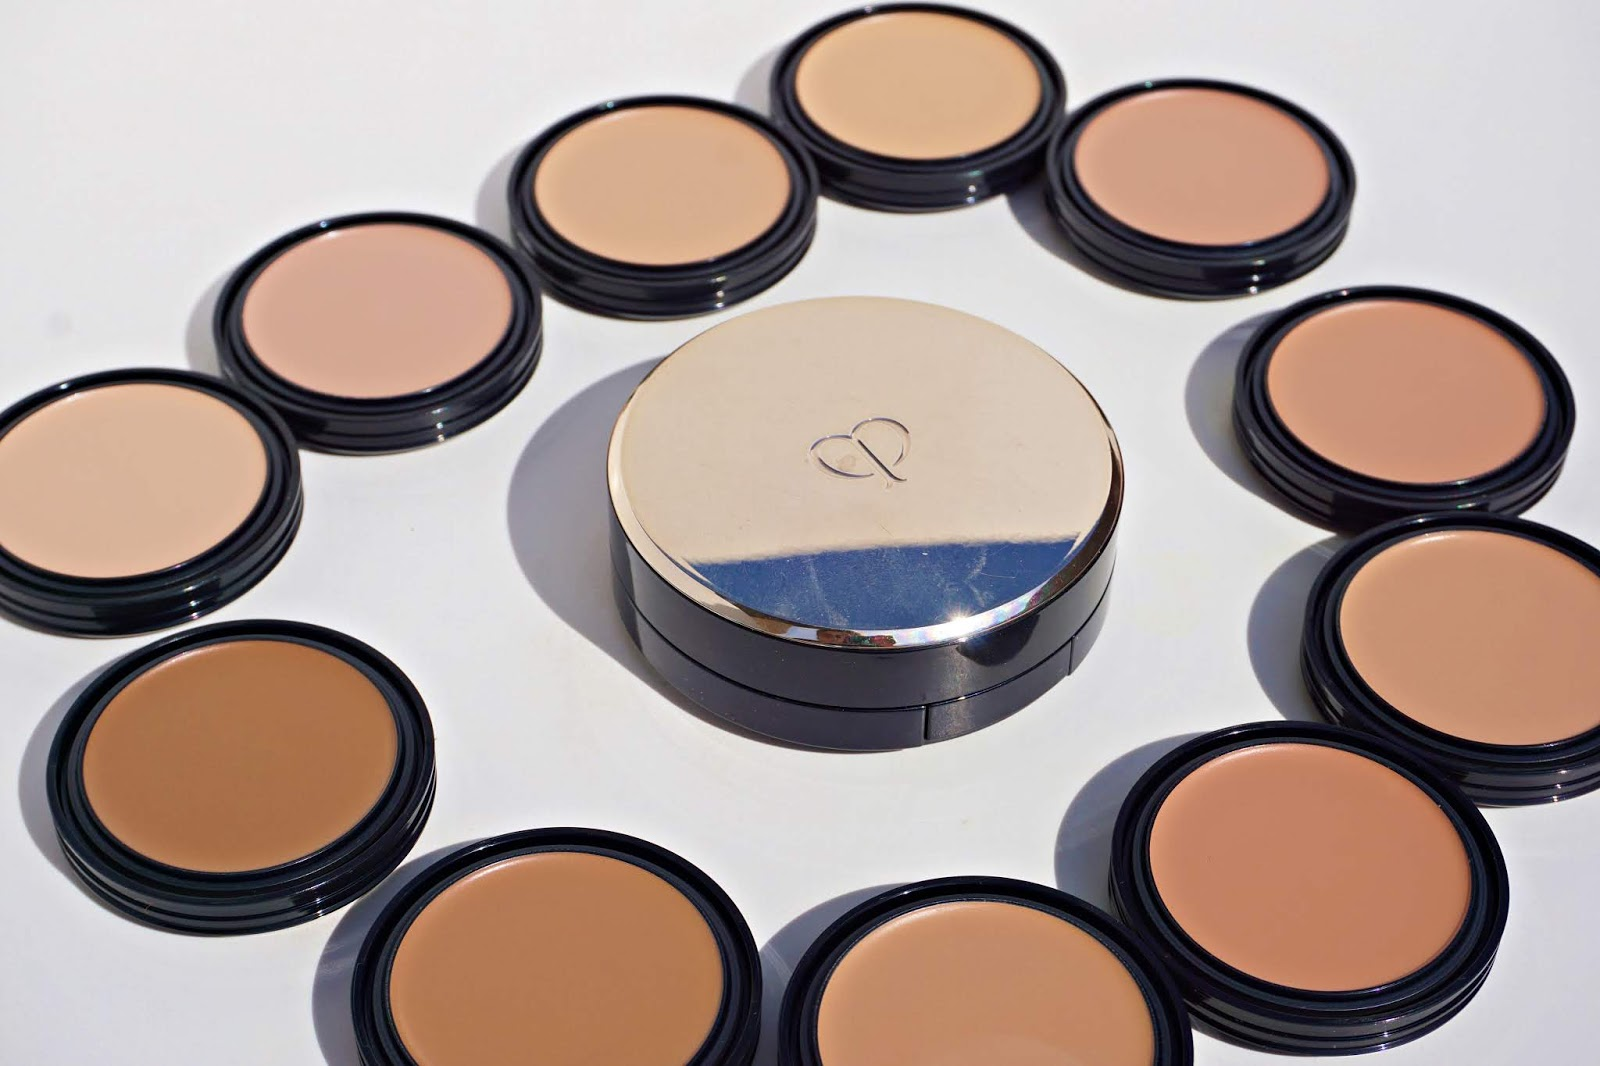 cle de peau radiant cream to powder foundation swatches